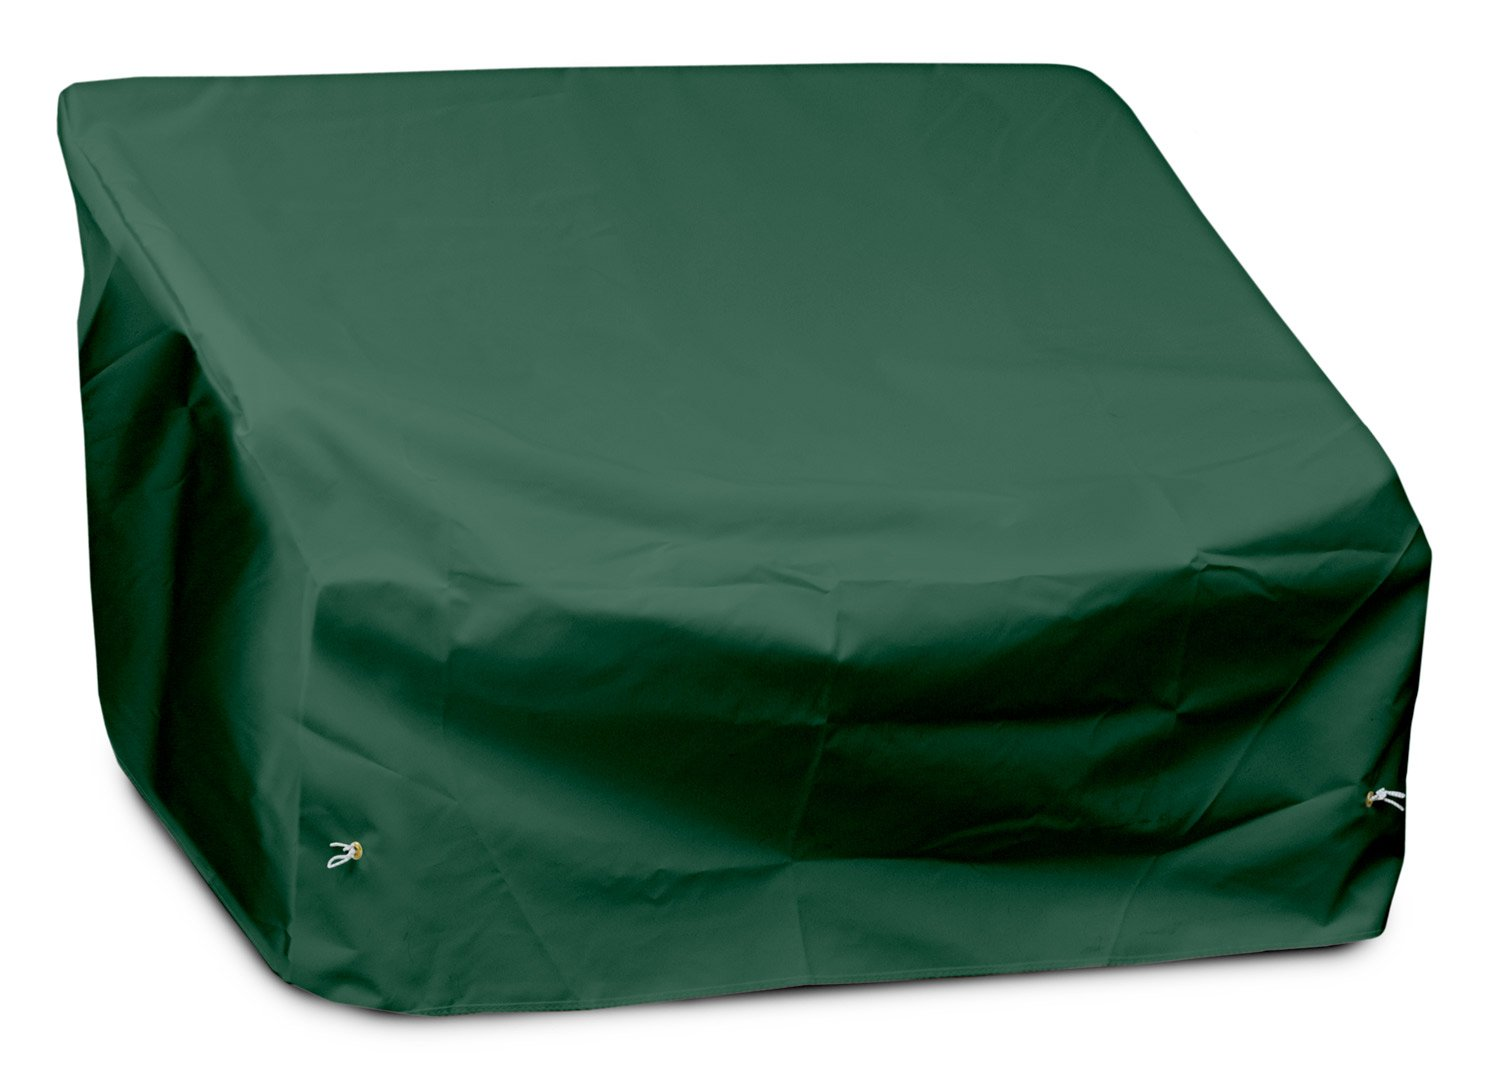 KoverRoos Weathermax 69147 Loveseat/Sofa Cover, 51-Inch Width by 33-Inch Diameter by 33-Inch Height, Forest Green by KOVERROOS (Image #1)